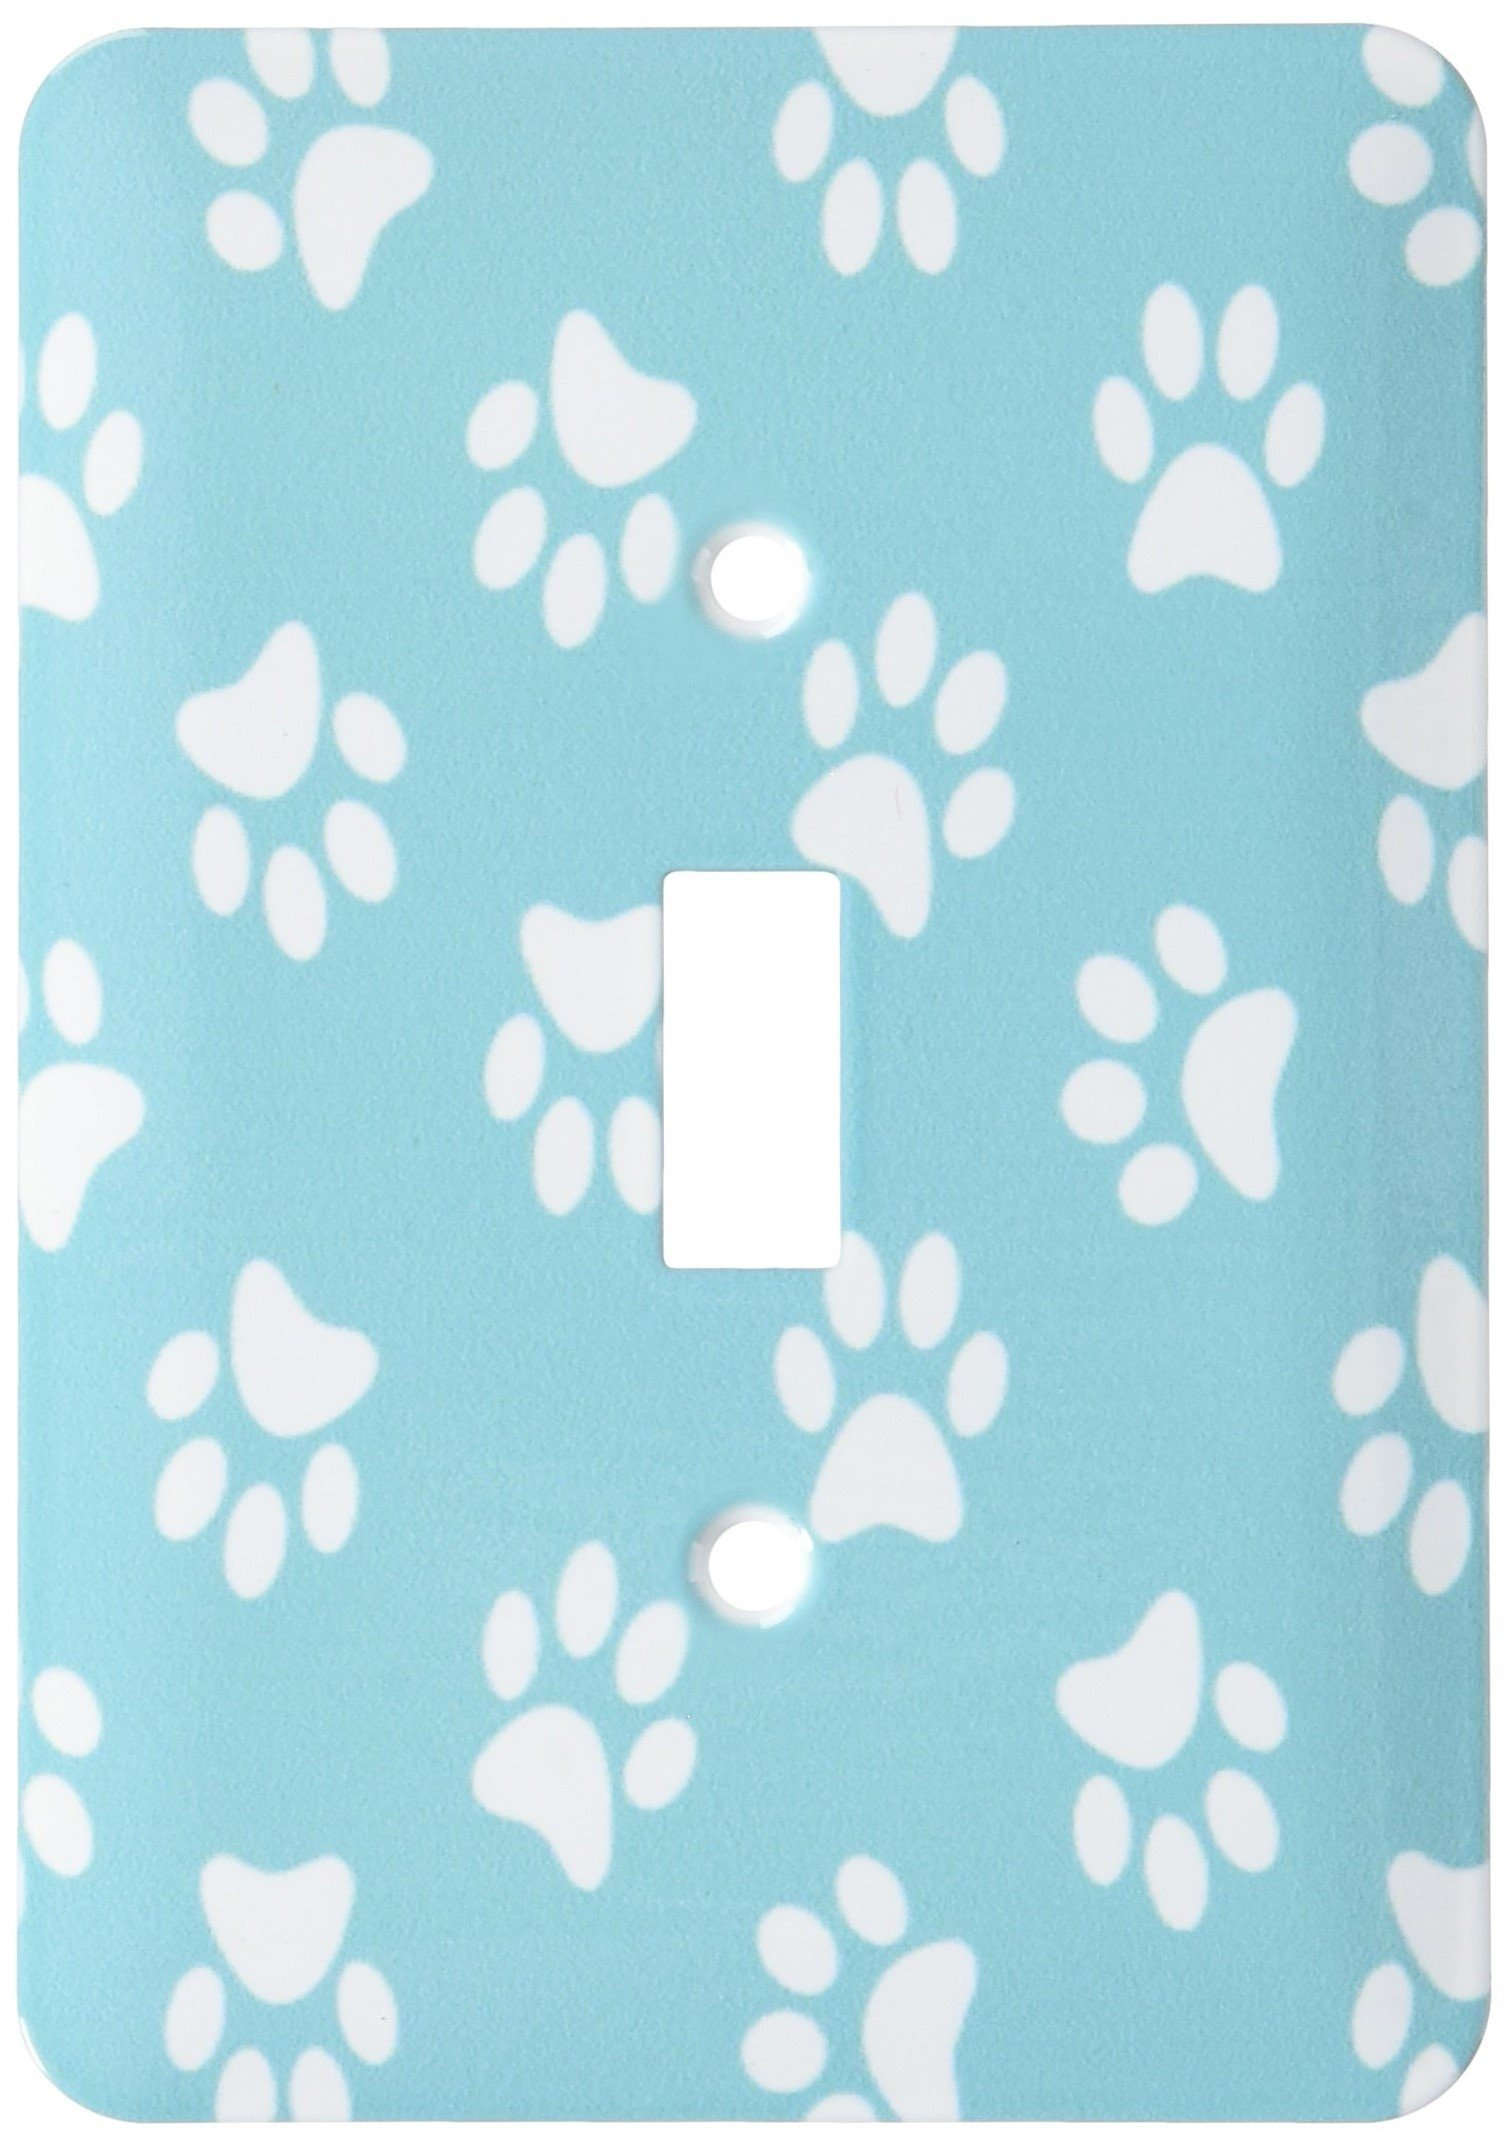 3dRose lsp_161531_1 Teal Blue and White Paw Print Pattern Turquoise Pawprints Cute Animal Eg Dog Or Cat Footprints Light Switch Cover